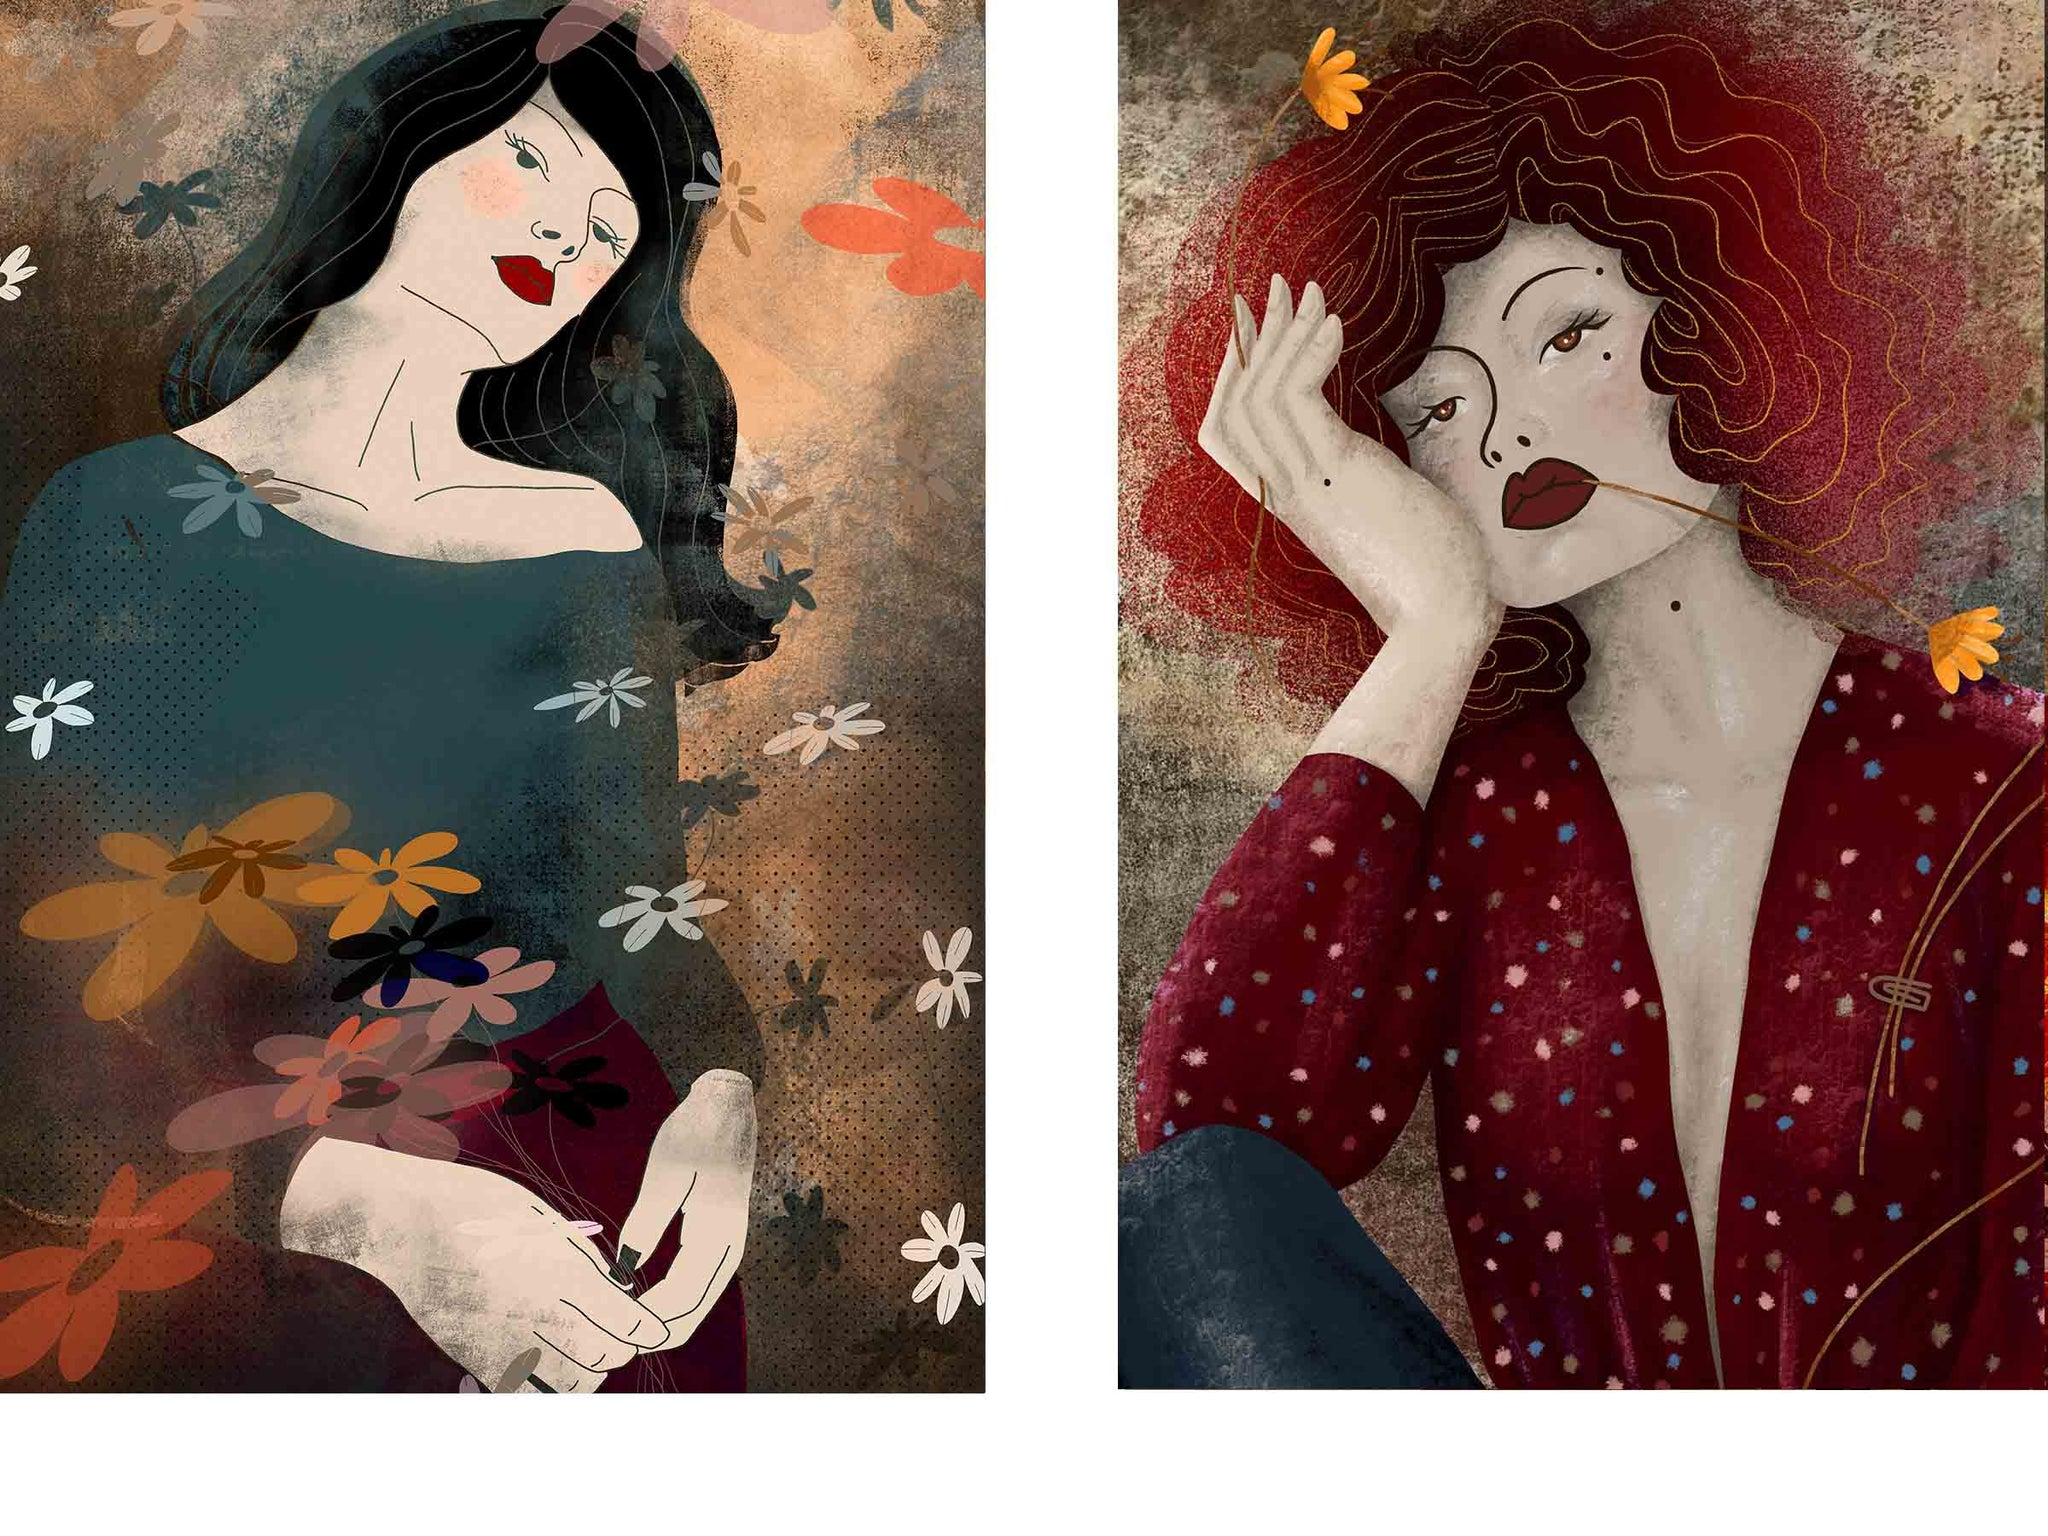 two separate stylized illustrated female portraits, both surrounded with flowers, both looking straight into your eyes